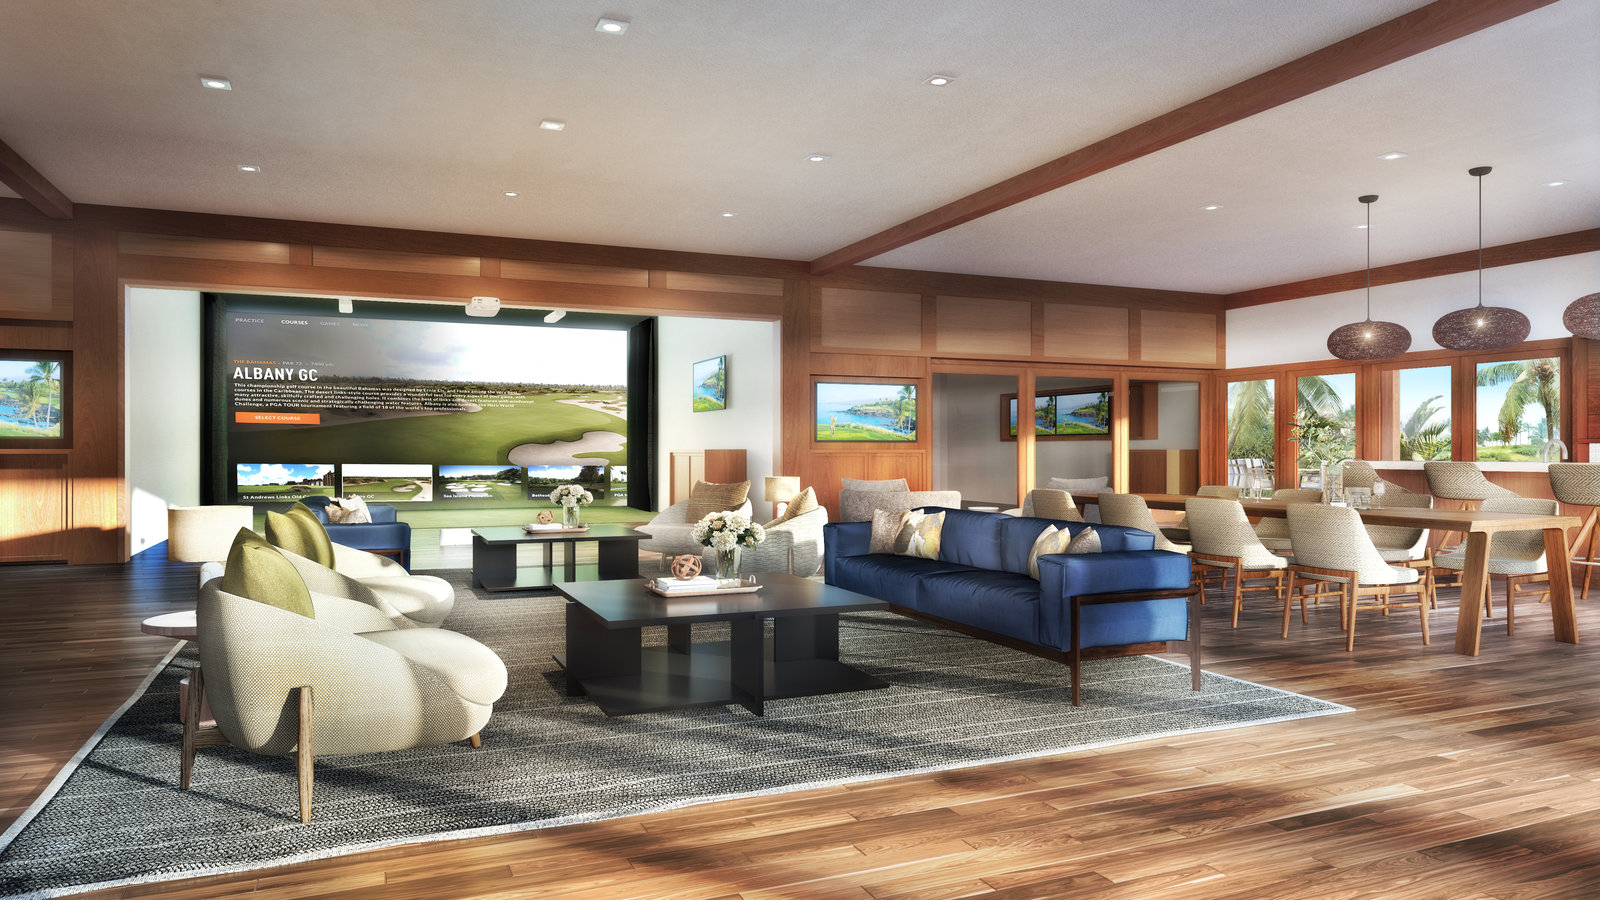 Lounge at Golf Academy with a blue couch, beige chairs, a large screen TV and table with chairs looking over golf club